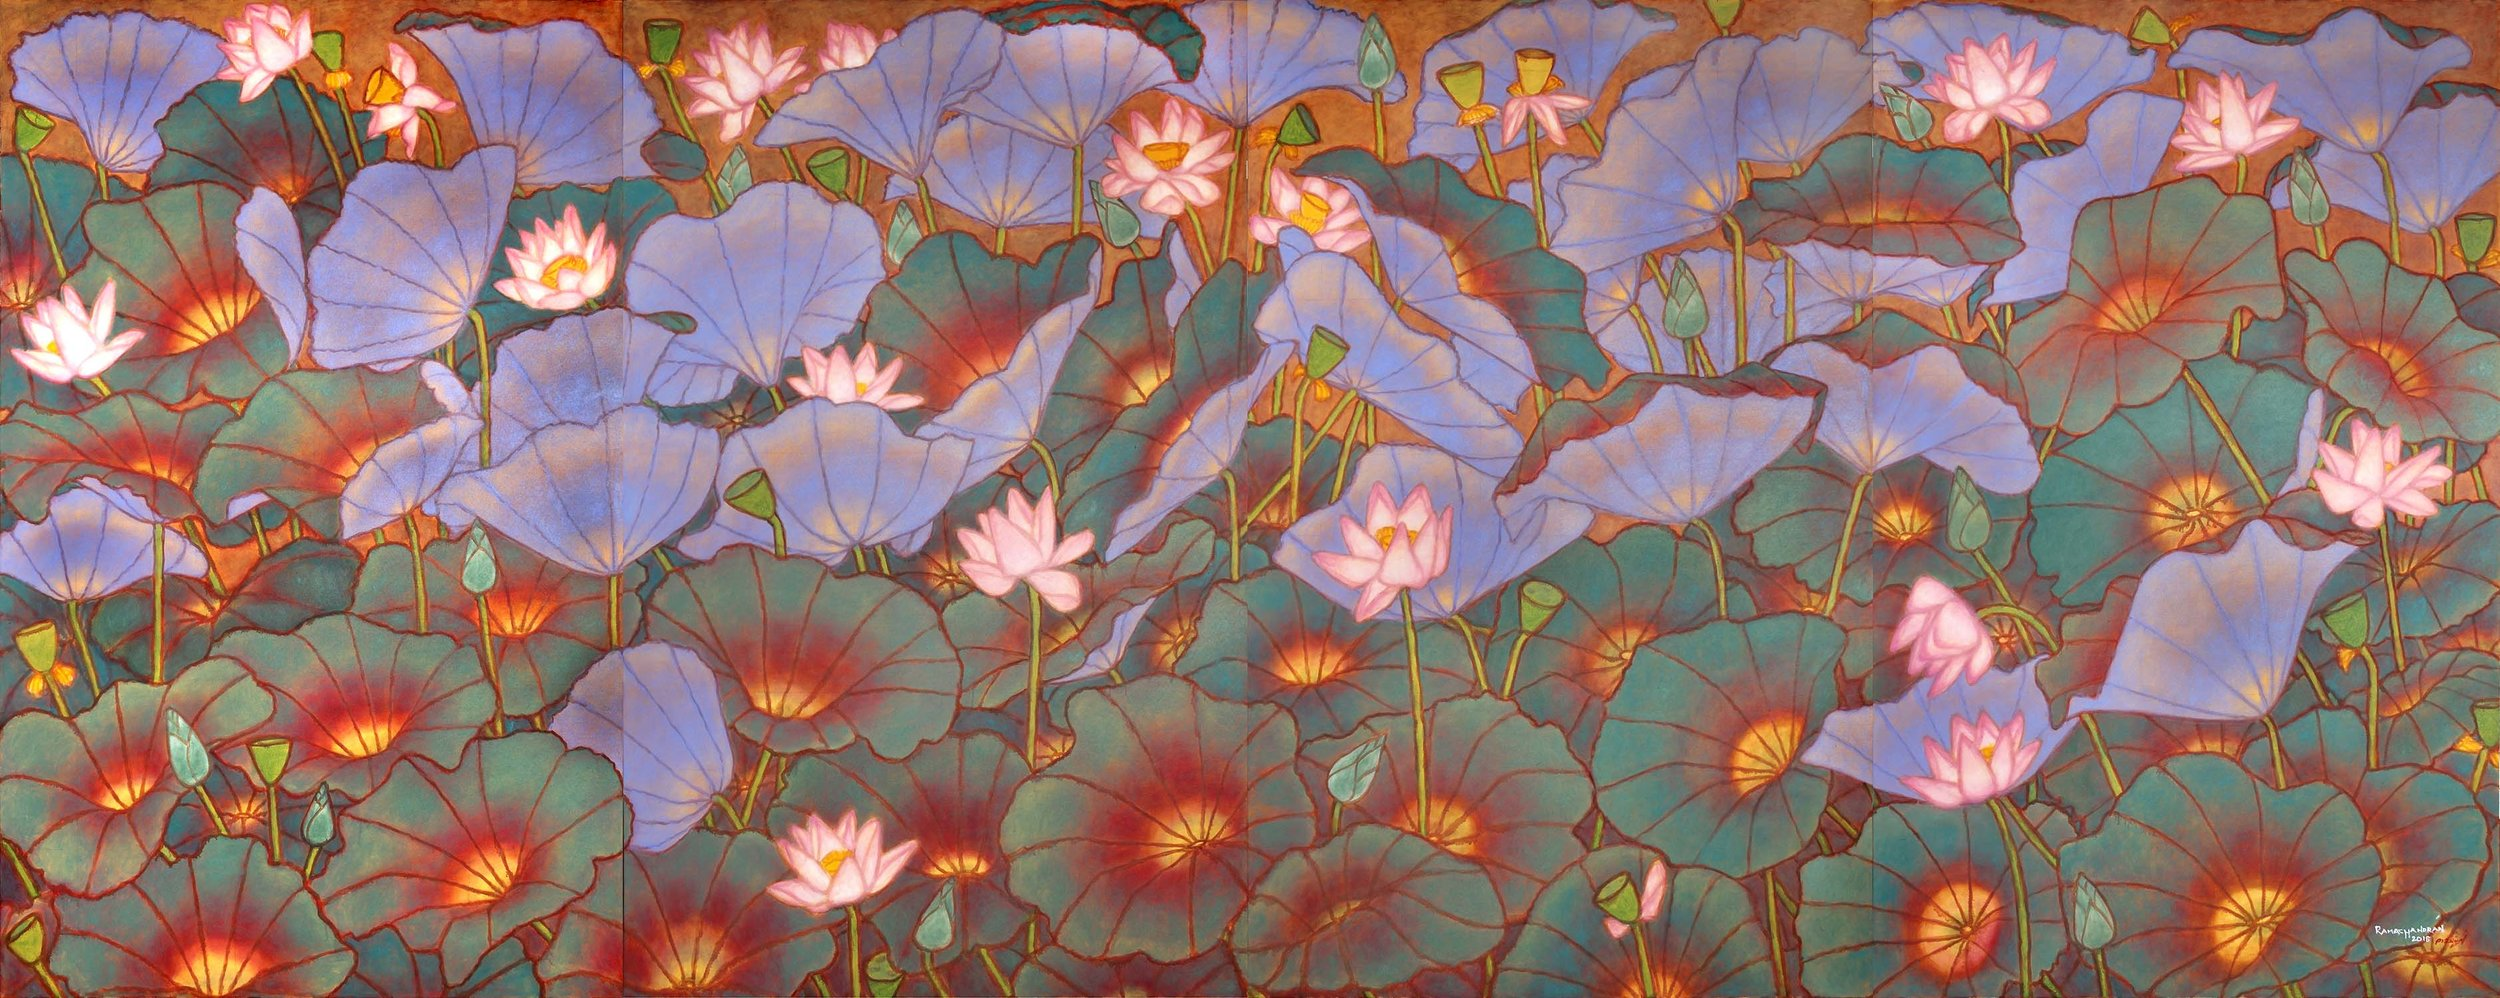 "Lotus pond in full bloom | Oil on canvas | 78"" x 192"" 